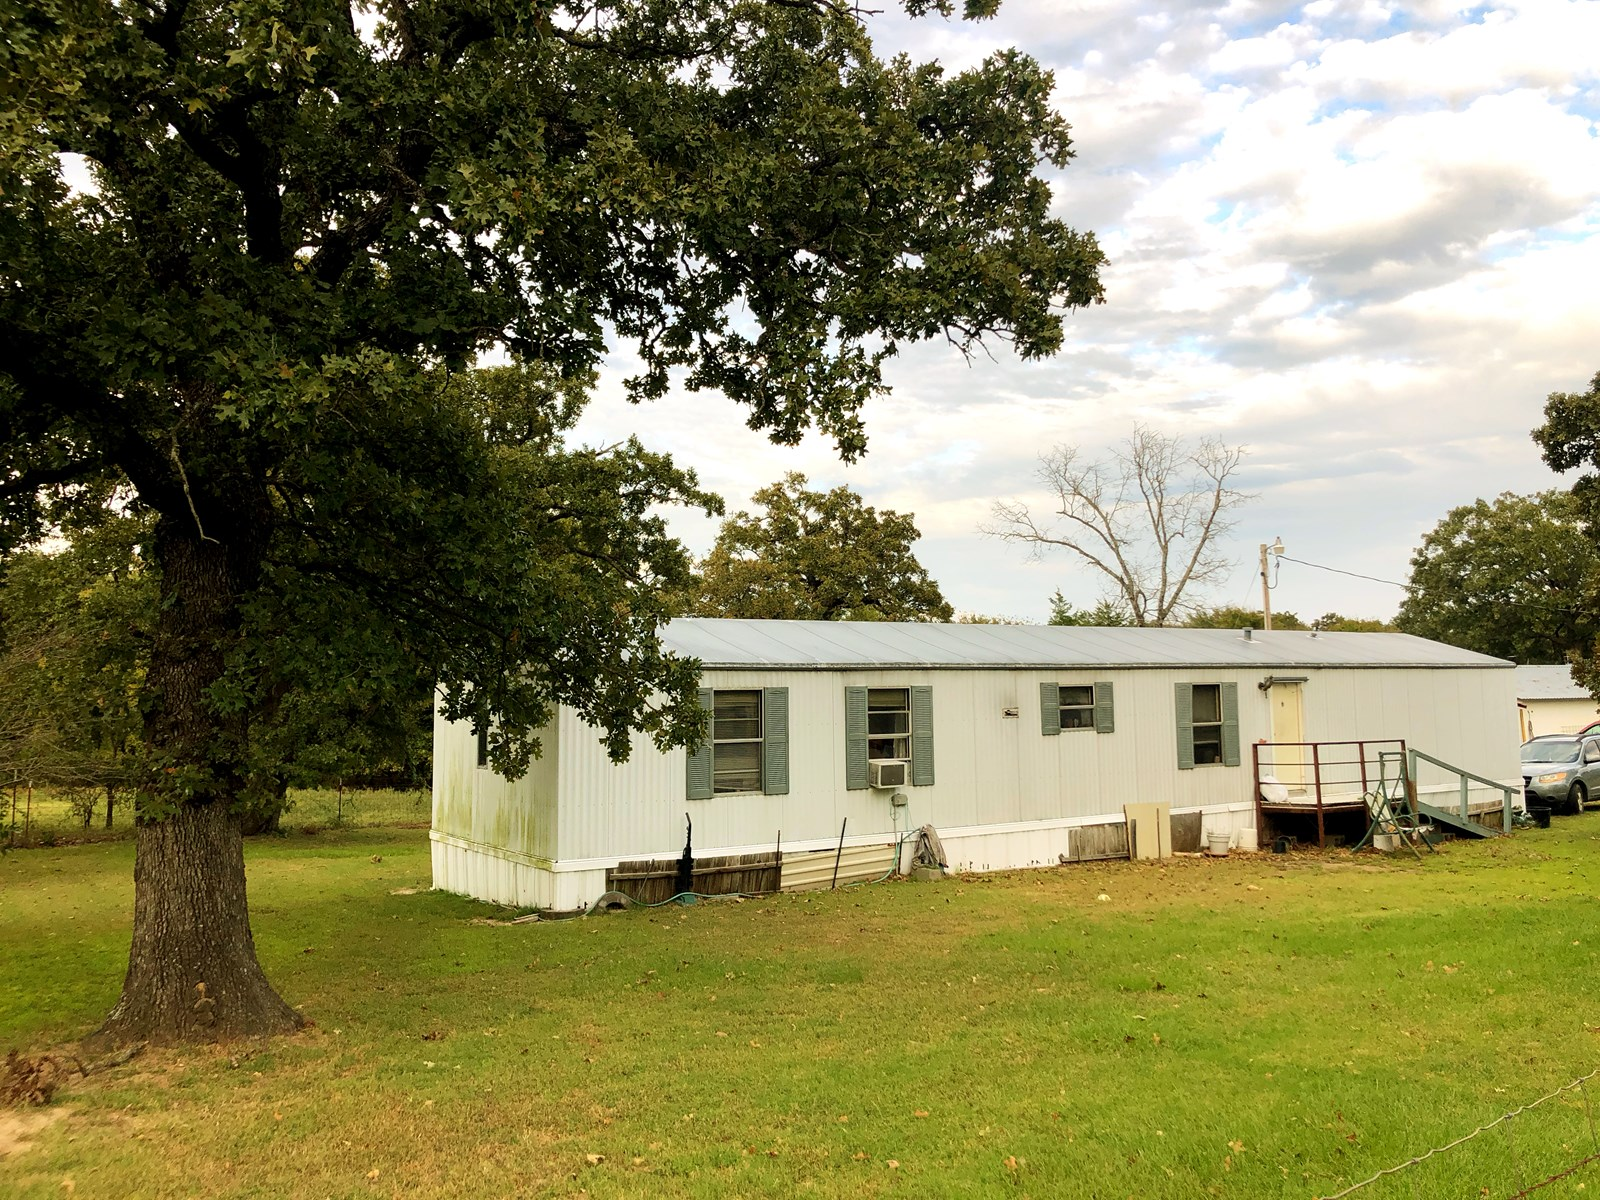 SNEAK PEEK OF UPCOMING AUCTION- TISHOMINGO, OK-NOV. 9TH